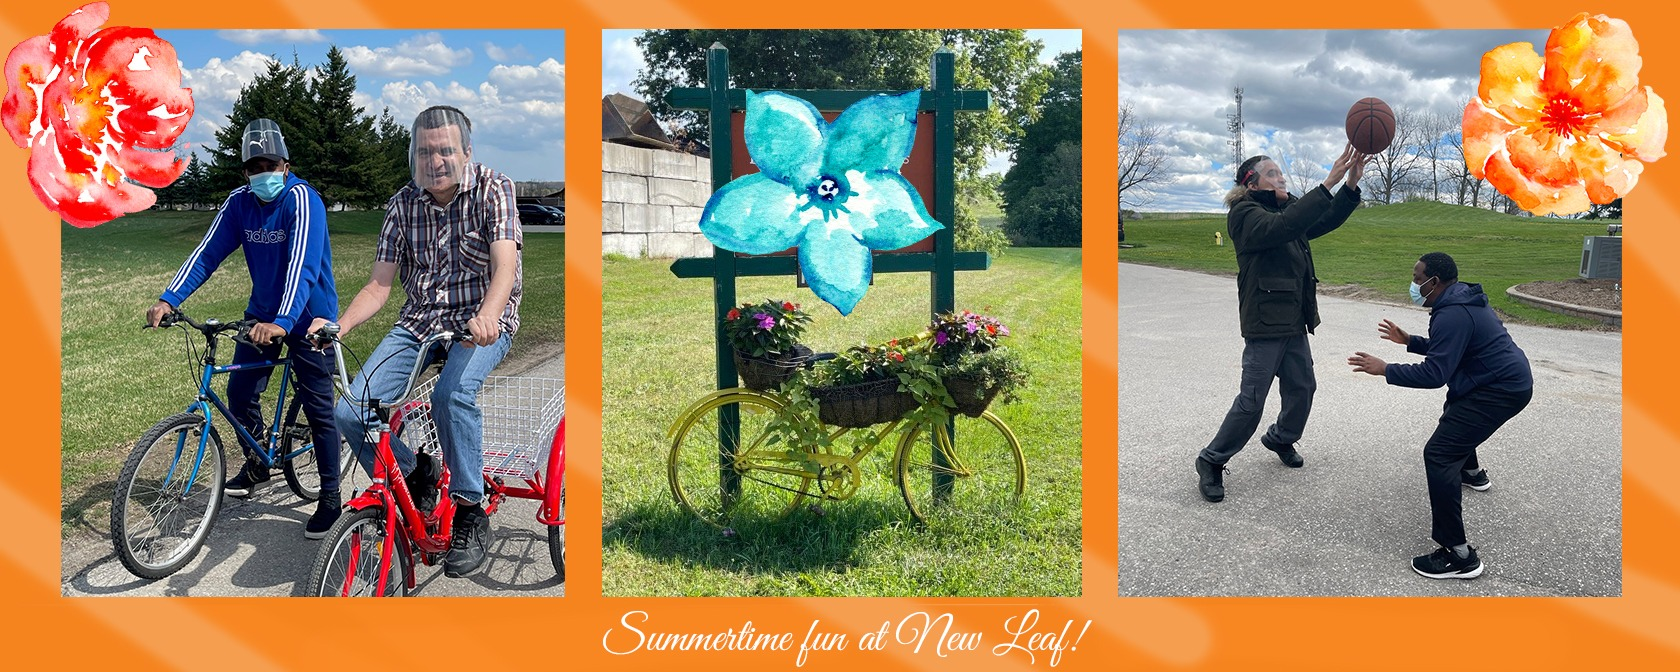 montage of summer fun at new leaf